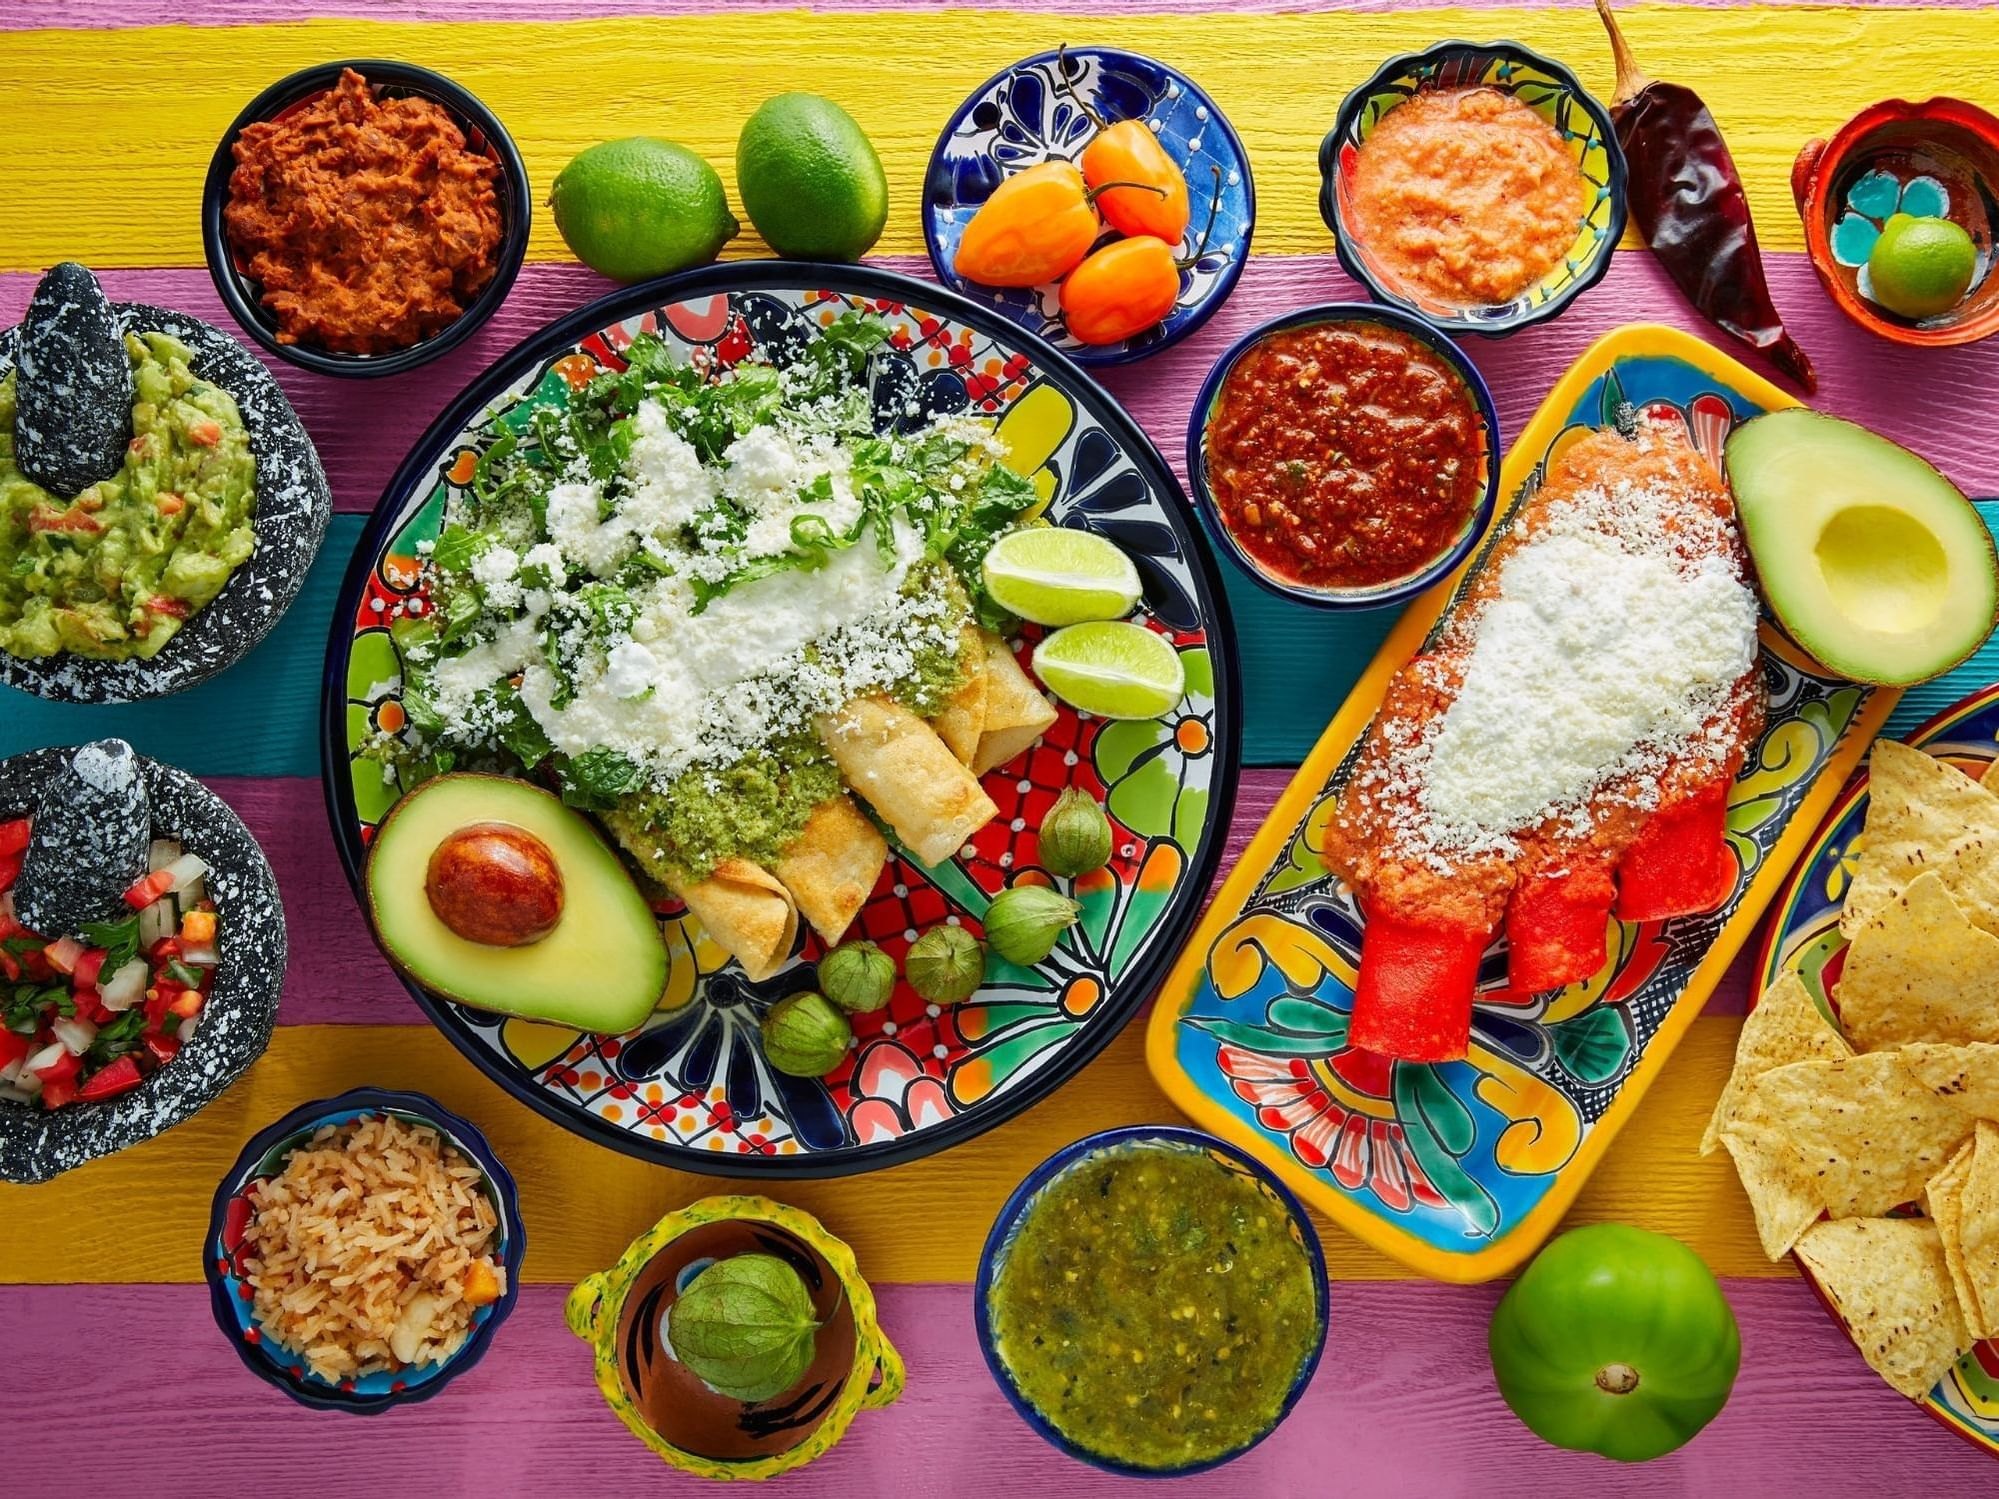 Colorful table with mexican food including enchildas and salsa